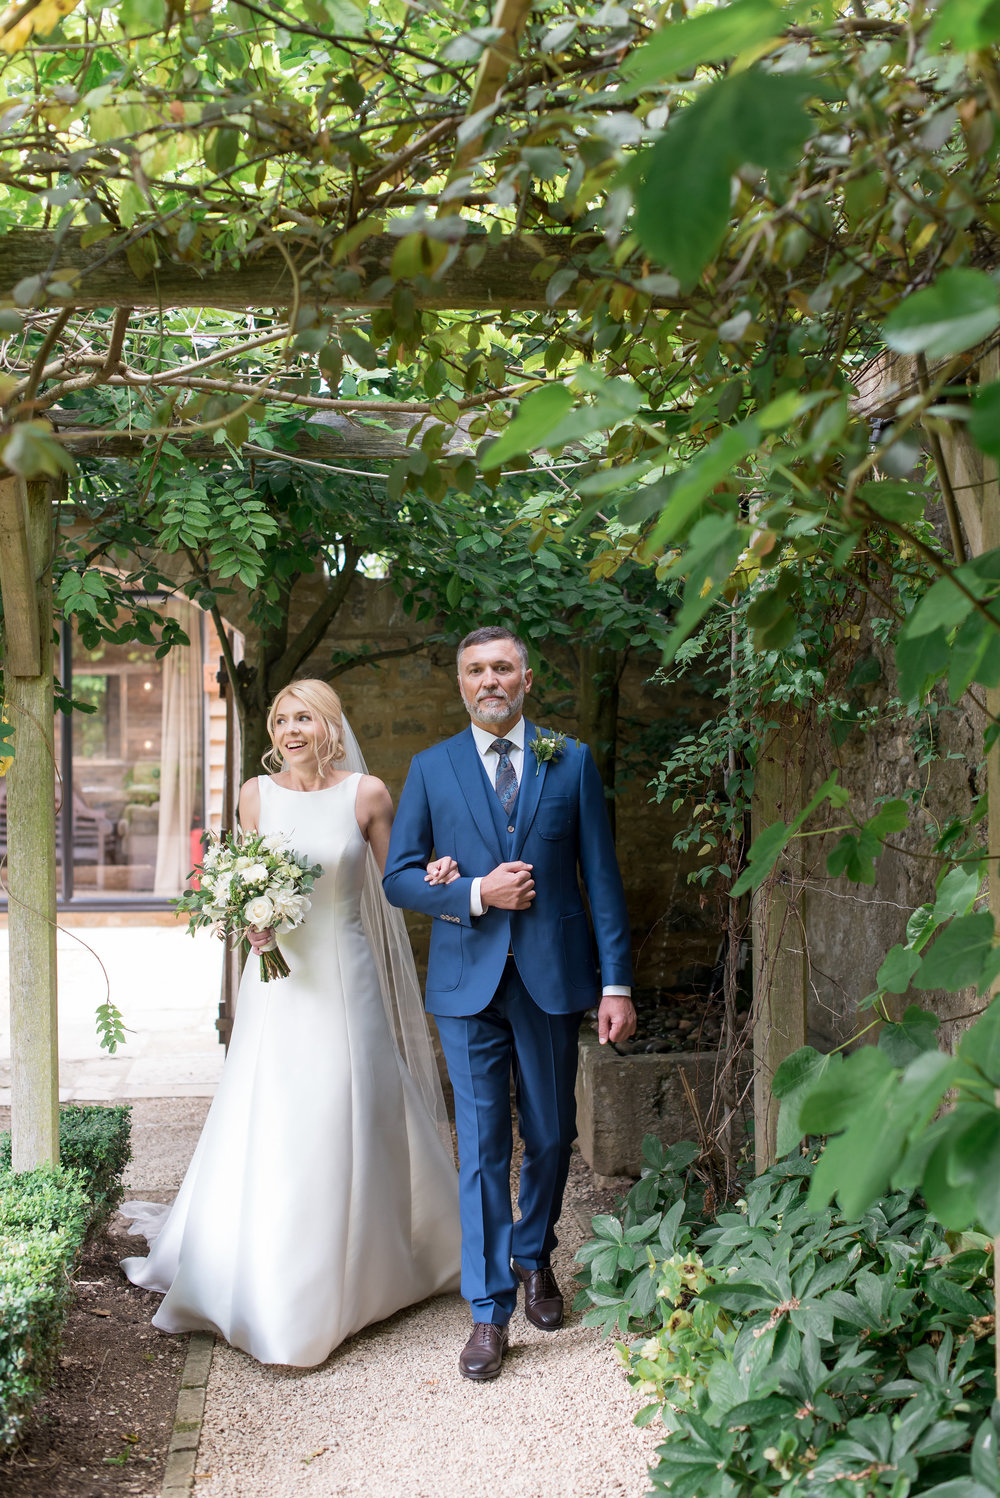 Green and white wedding at Tythe Barn